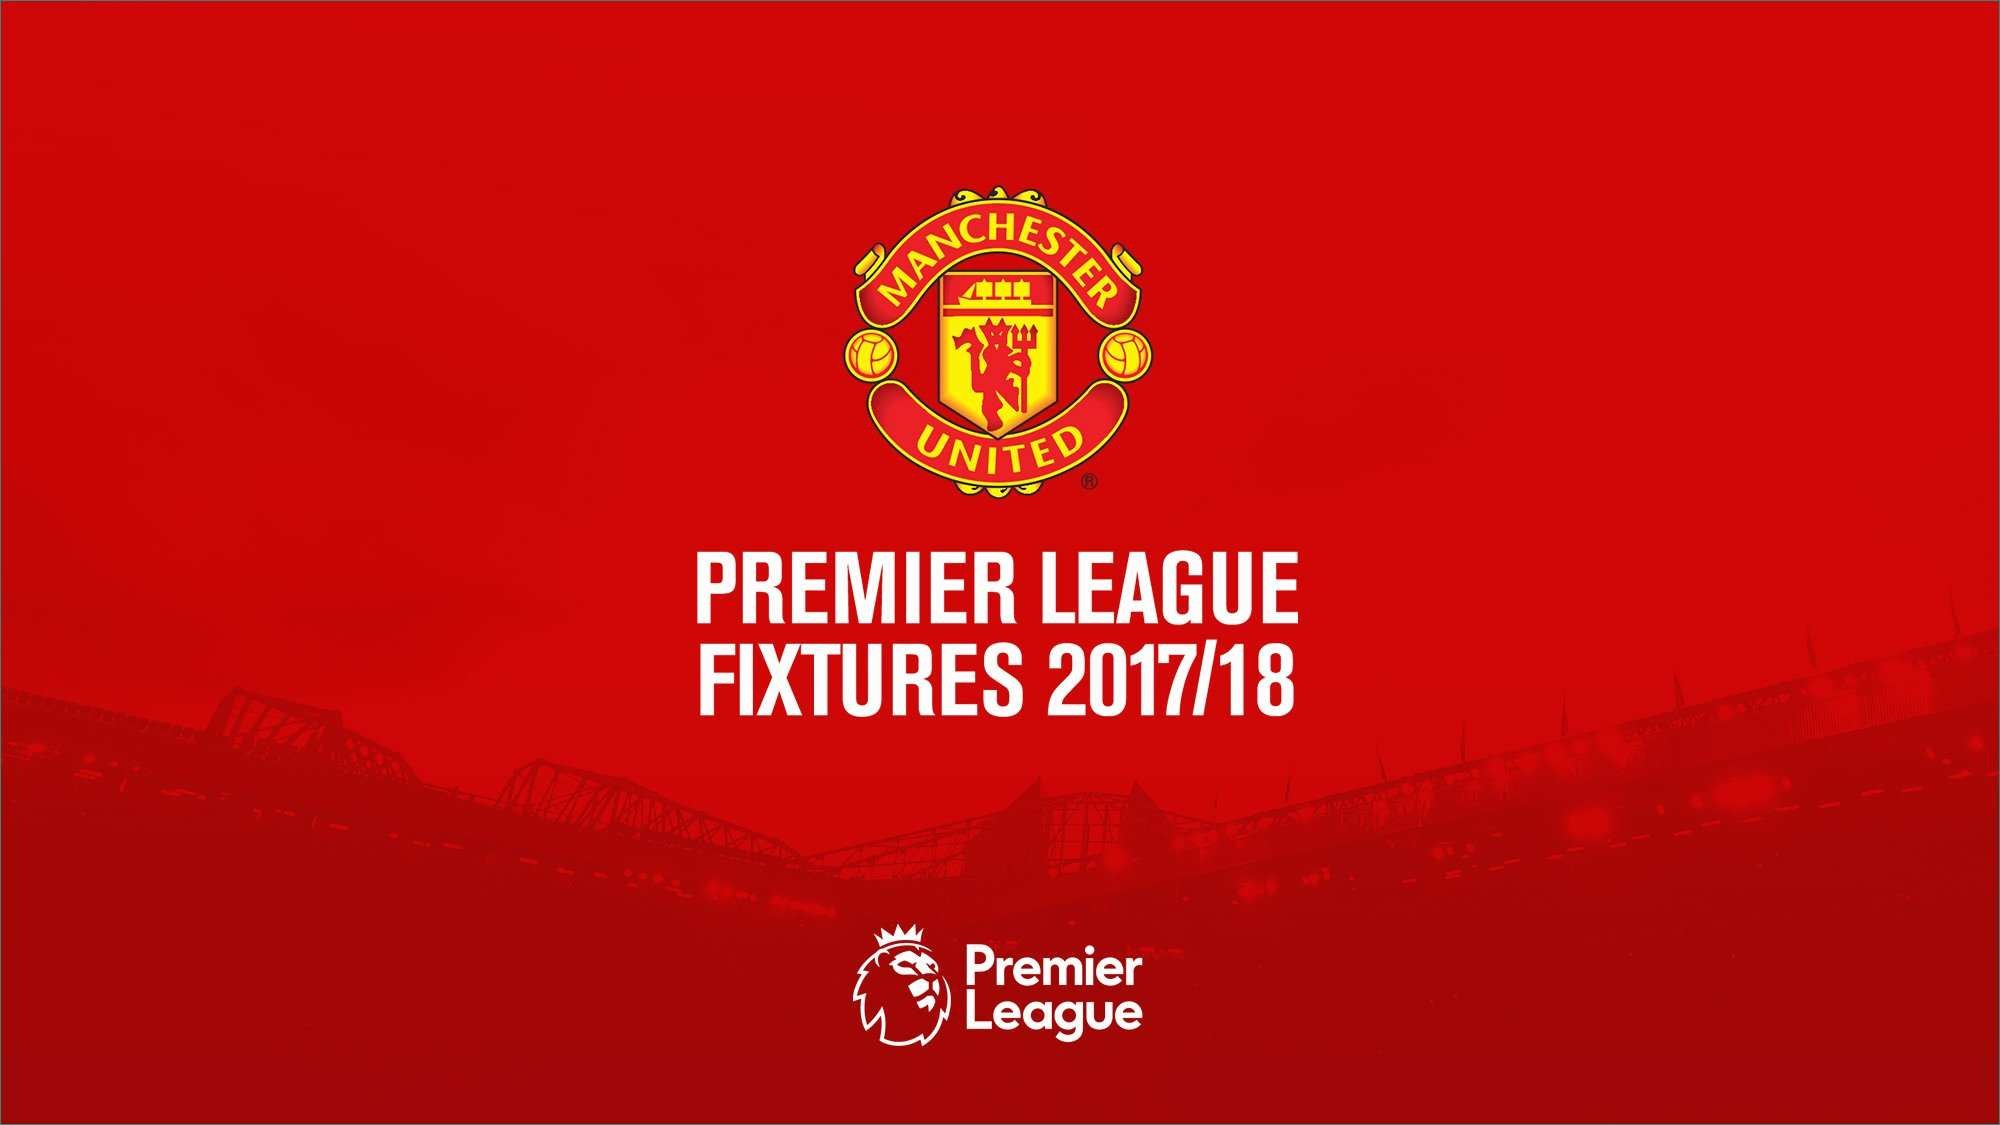 0aba0453e08 1920x1080 Manchester United Wallpaper 2018 71 Images